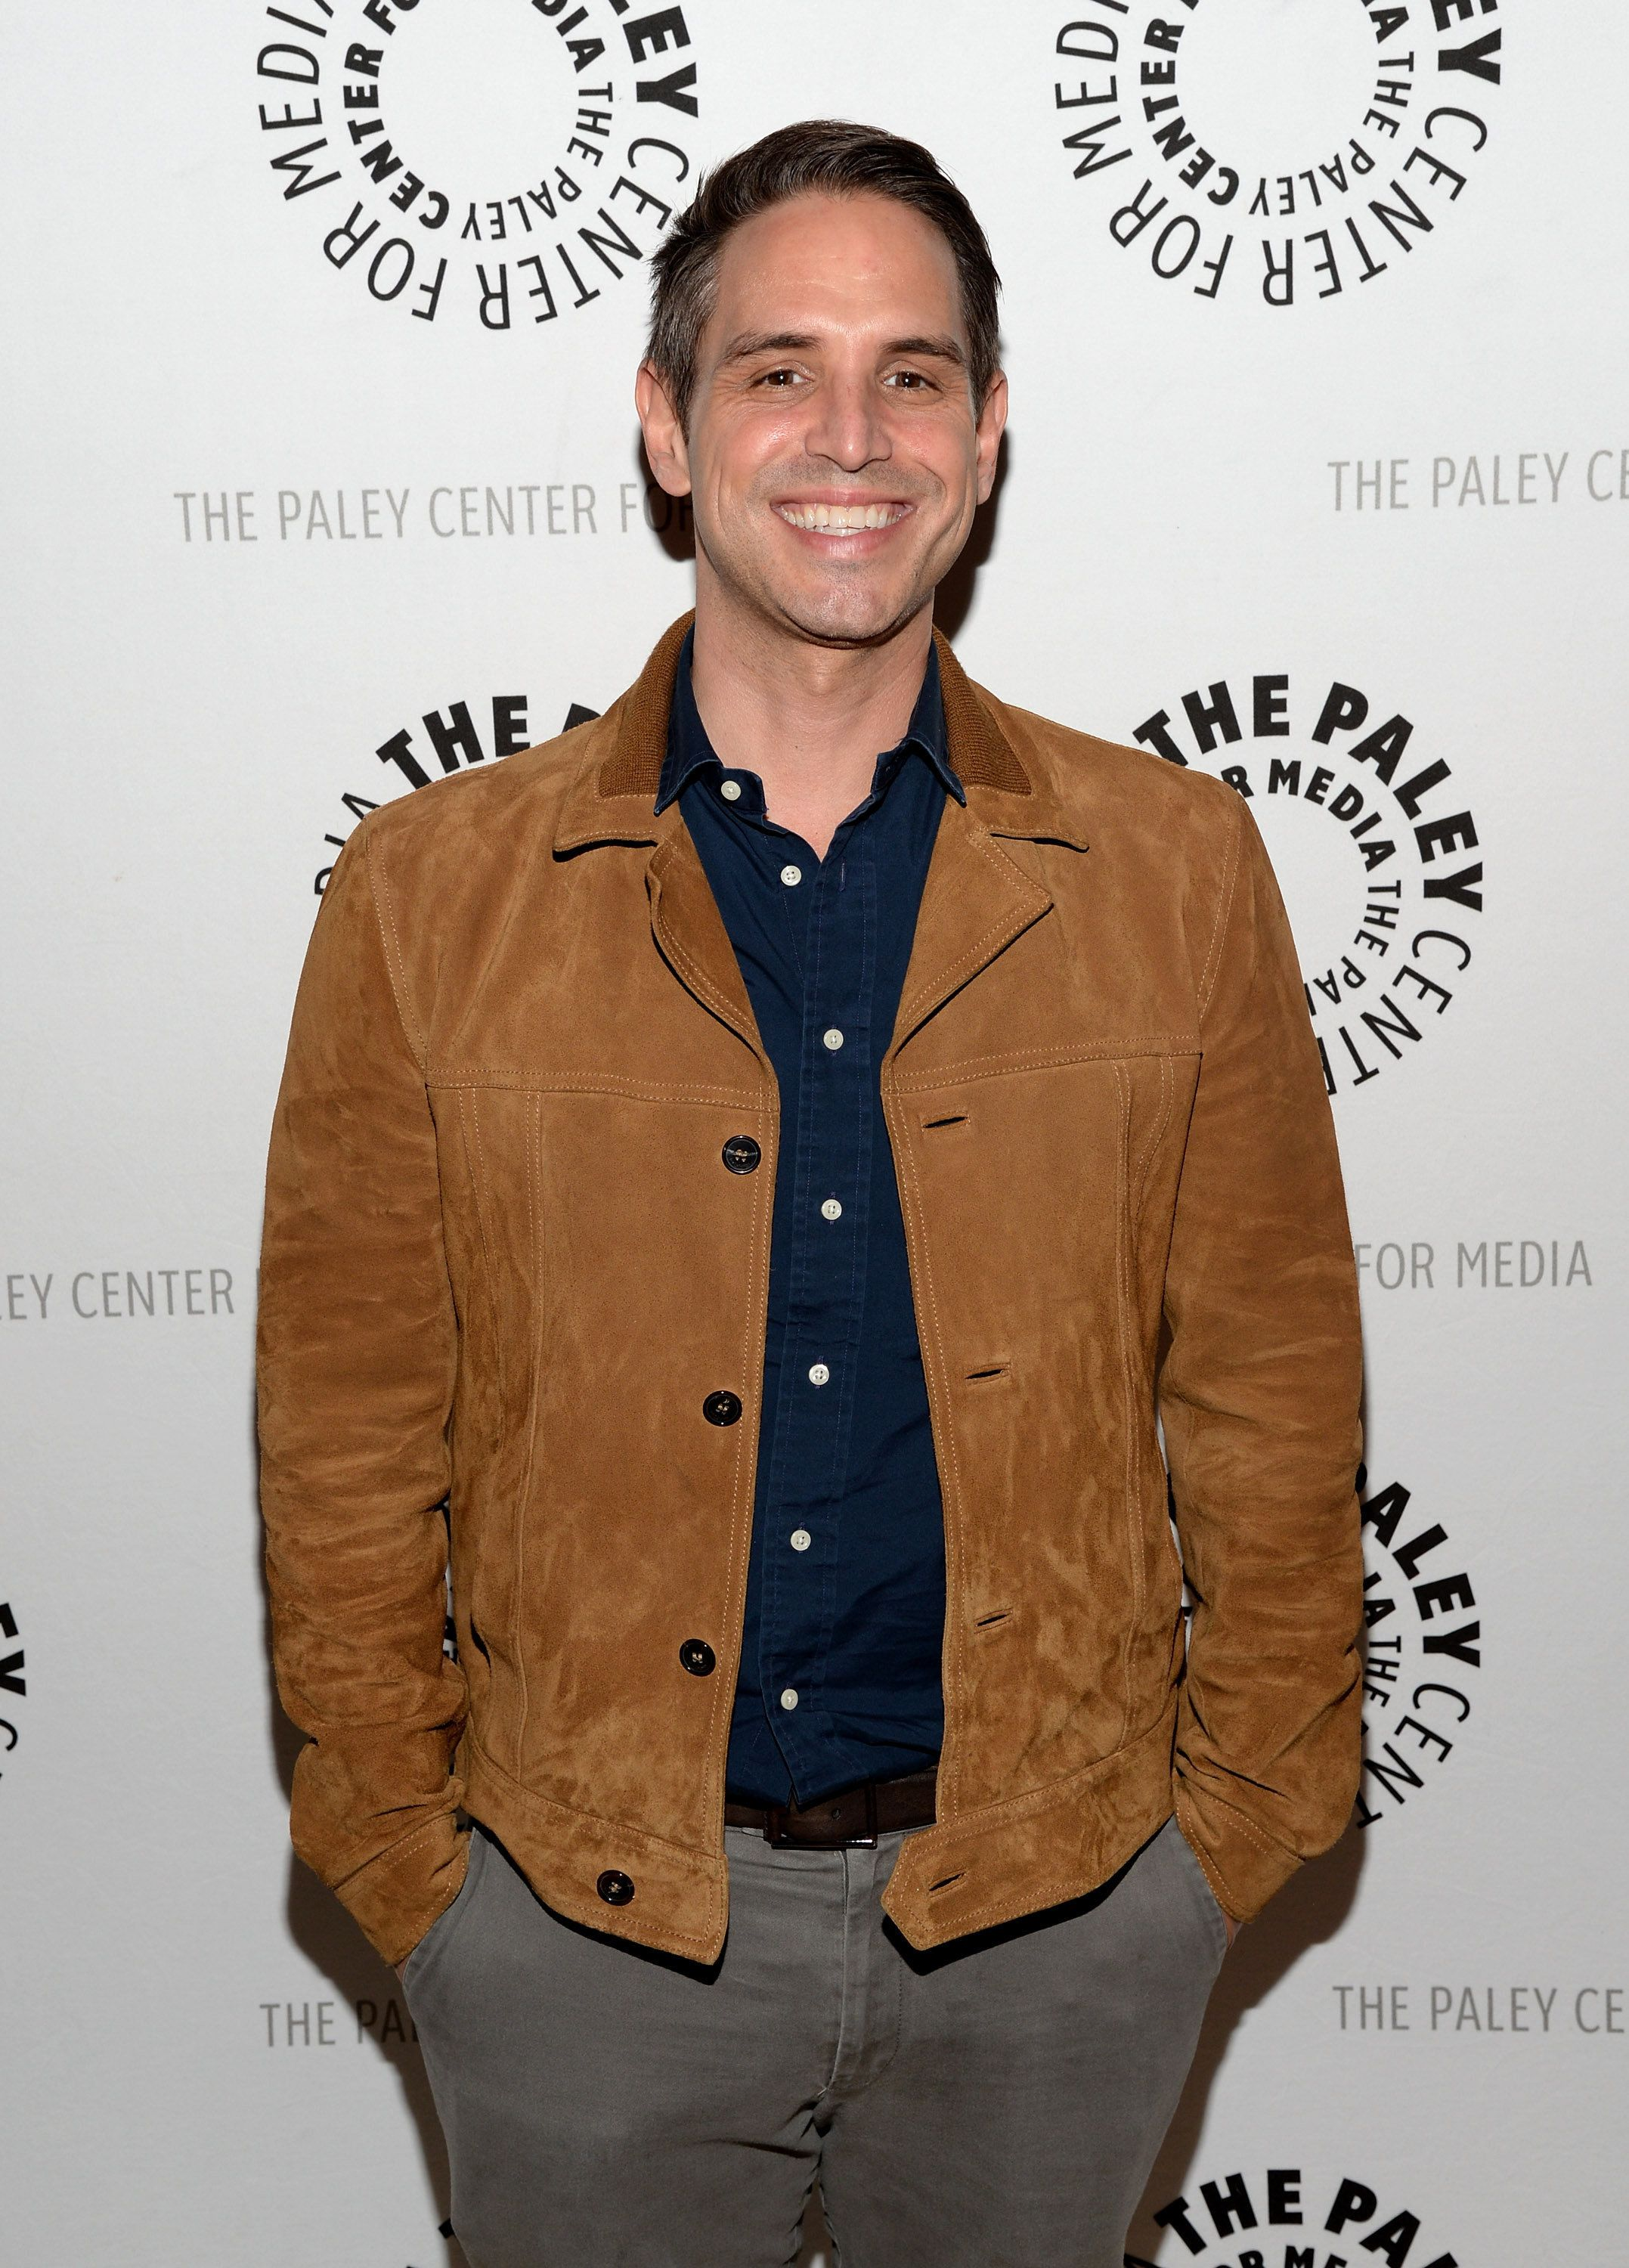 BEVERLY HILLS, CA - NOVEMBER 19:  Producer Greg Berlanti attends Paley Media Council Presents Paley Dialogue With Peter Roth And Greg Berlanti at The Paley Center for Media on November 19, 2015 in Beverly Hills, California.  (Photo by Michael Kovac/Getty Images for Paley Center)